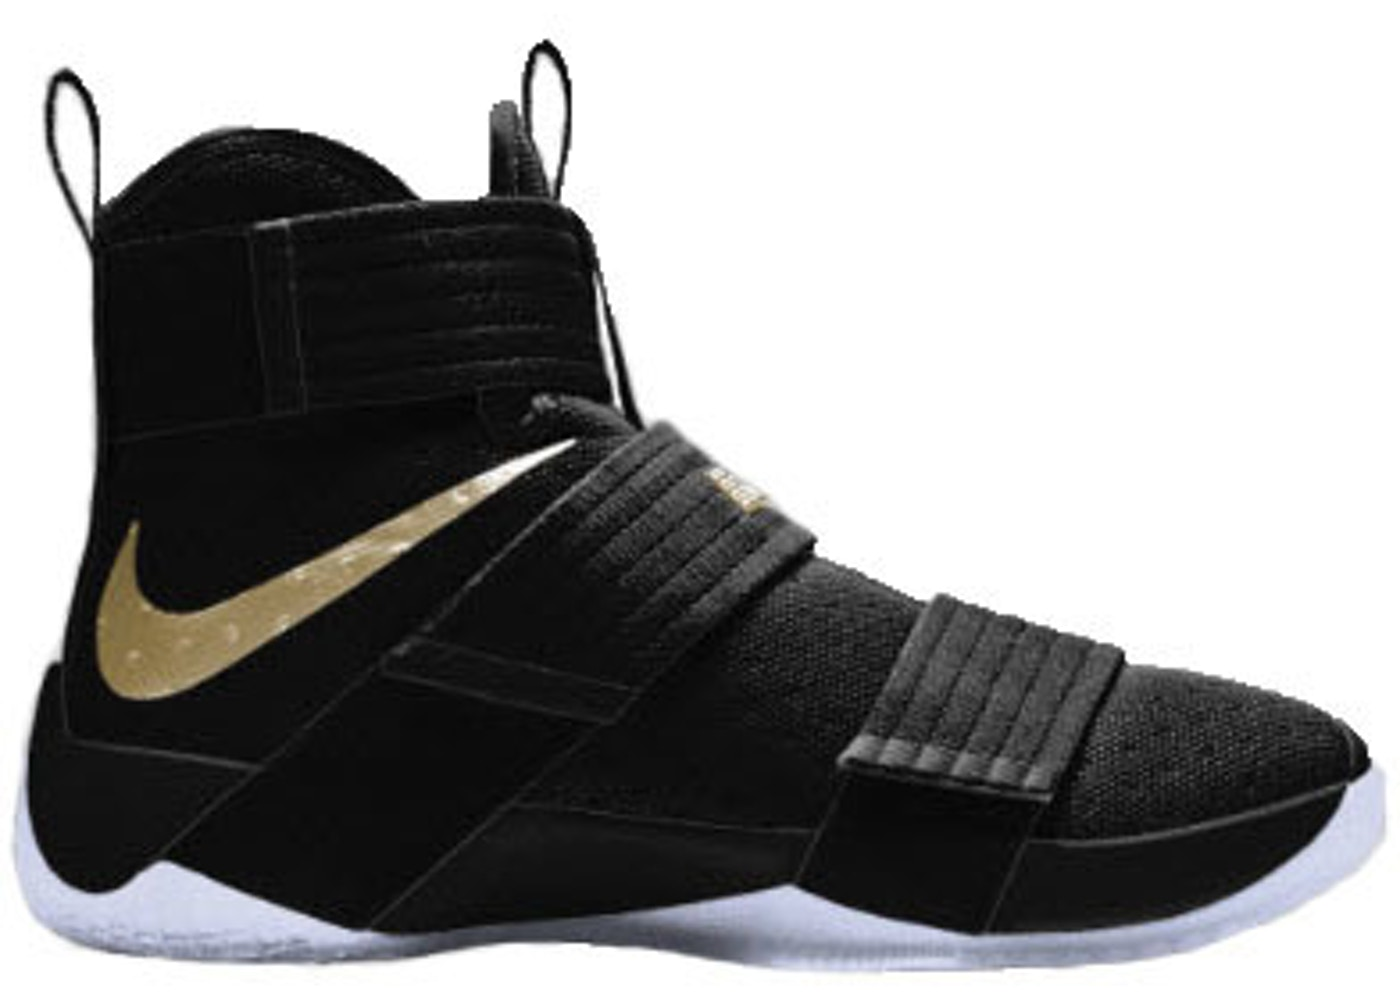 44c7e9918f081 LeBron Zoom Soldier 10 Black Gold (Nike iD) - 885682-991